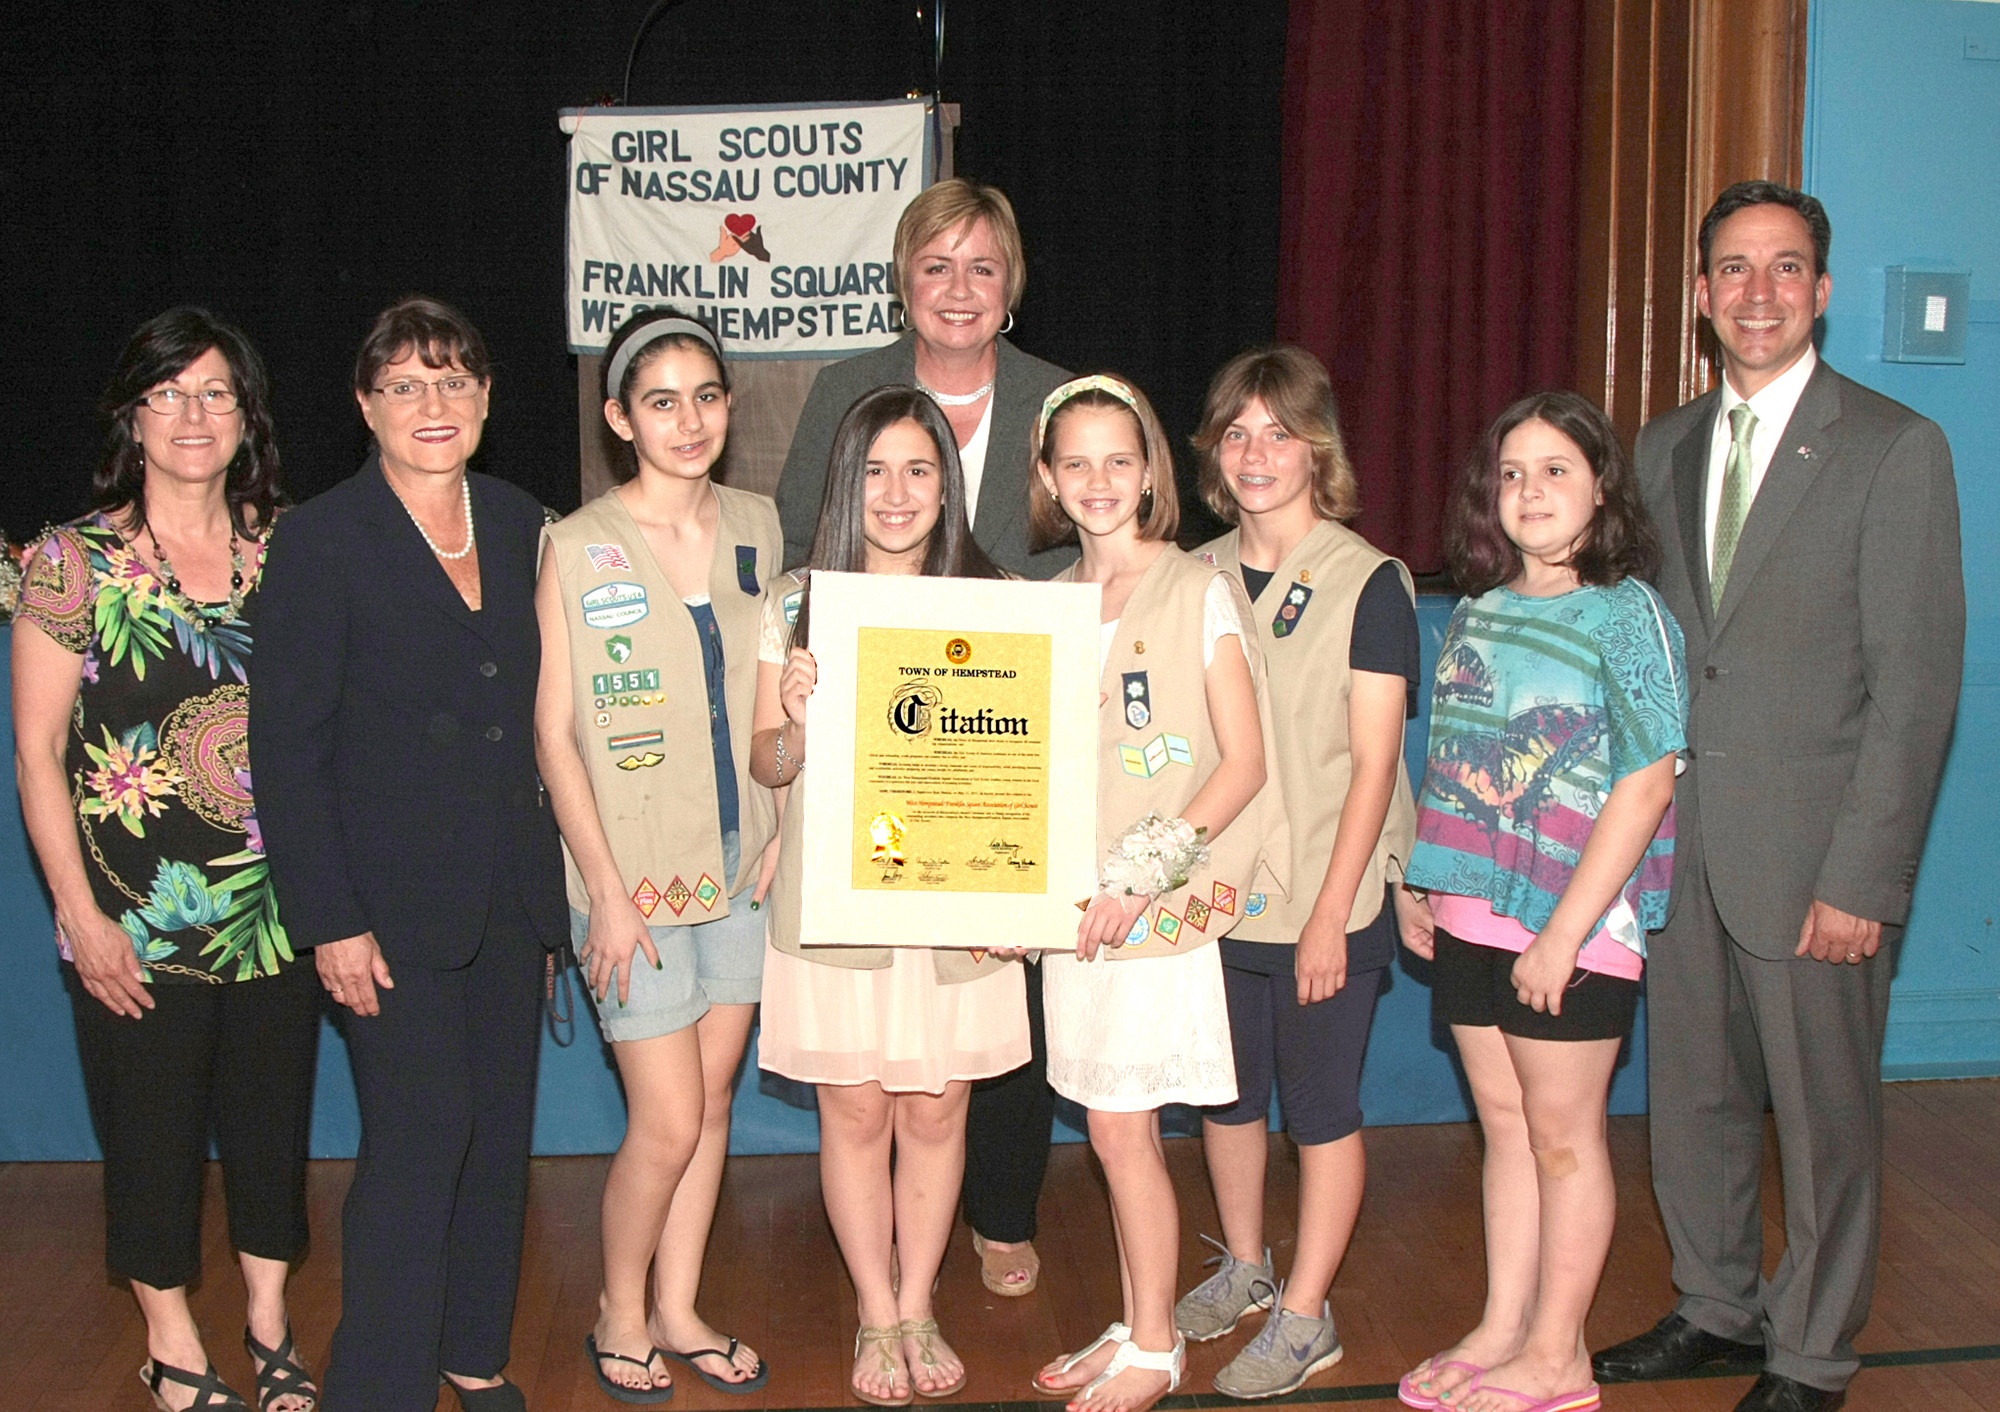 New York State Senator Jack Martins, Nassau County Clerk Maureen O'Connell, Town of Hempstead Supervisor Kate Murray recognize Troop 1551 with the Silver Award alongside Leader Liz Romano.